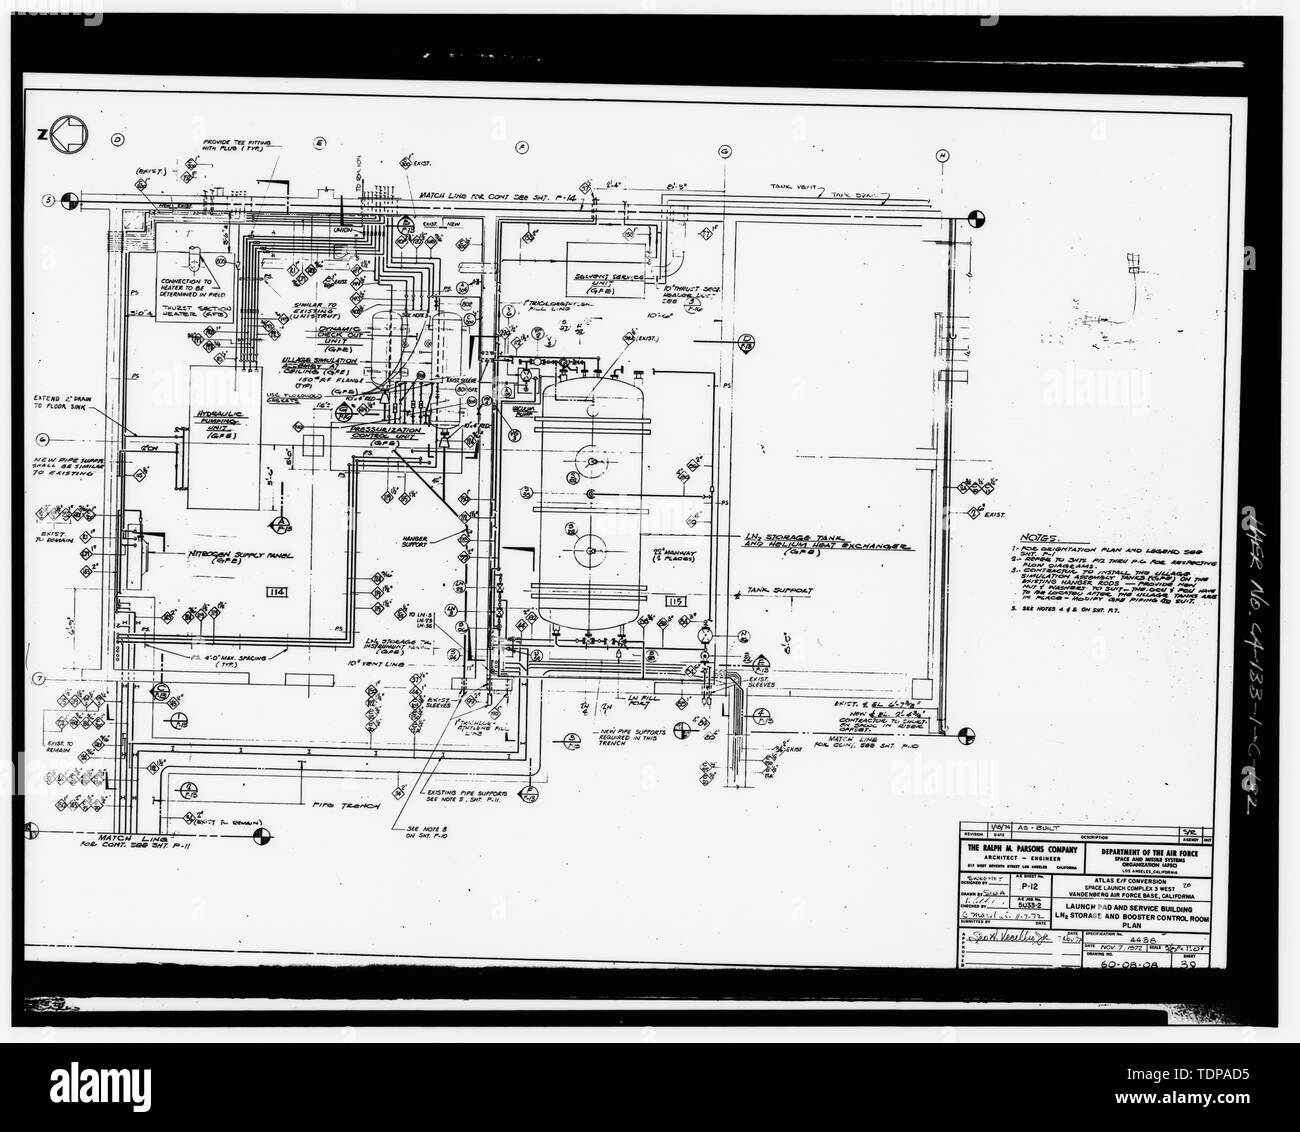 hight resolution of photocopy of drawing 1972 piping drawing by the ralph m parsons company plan